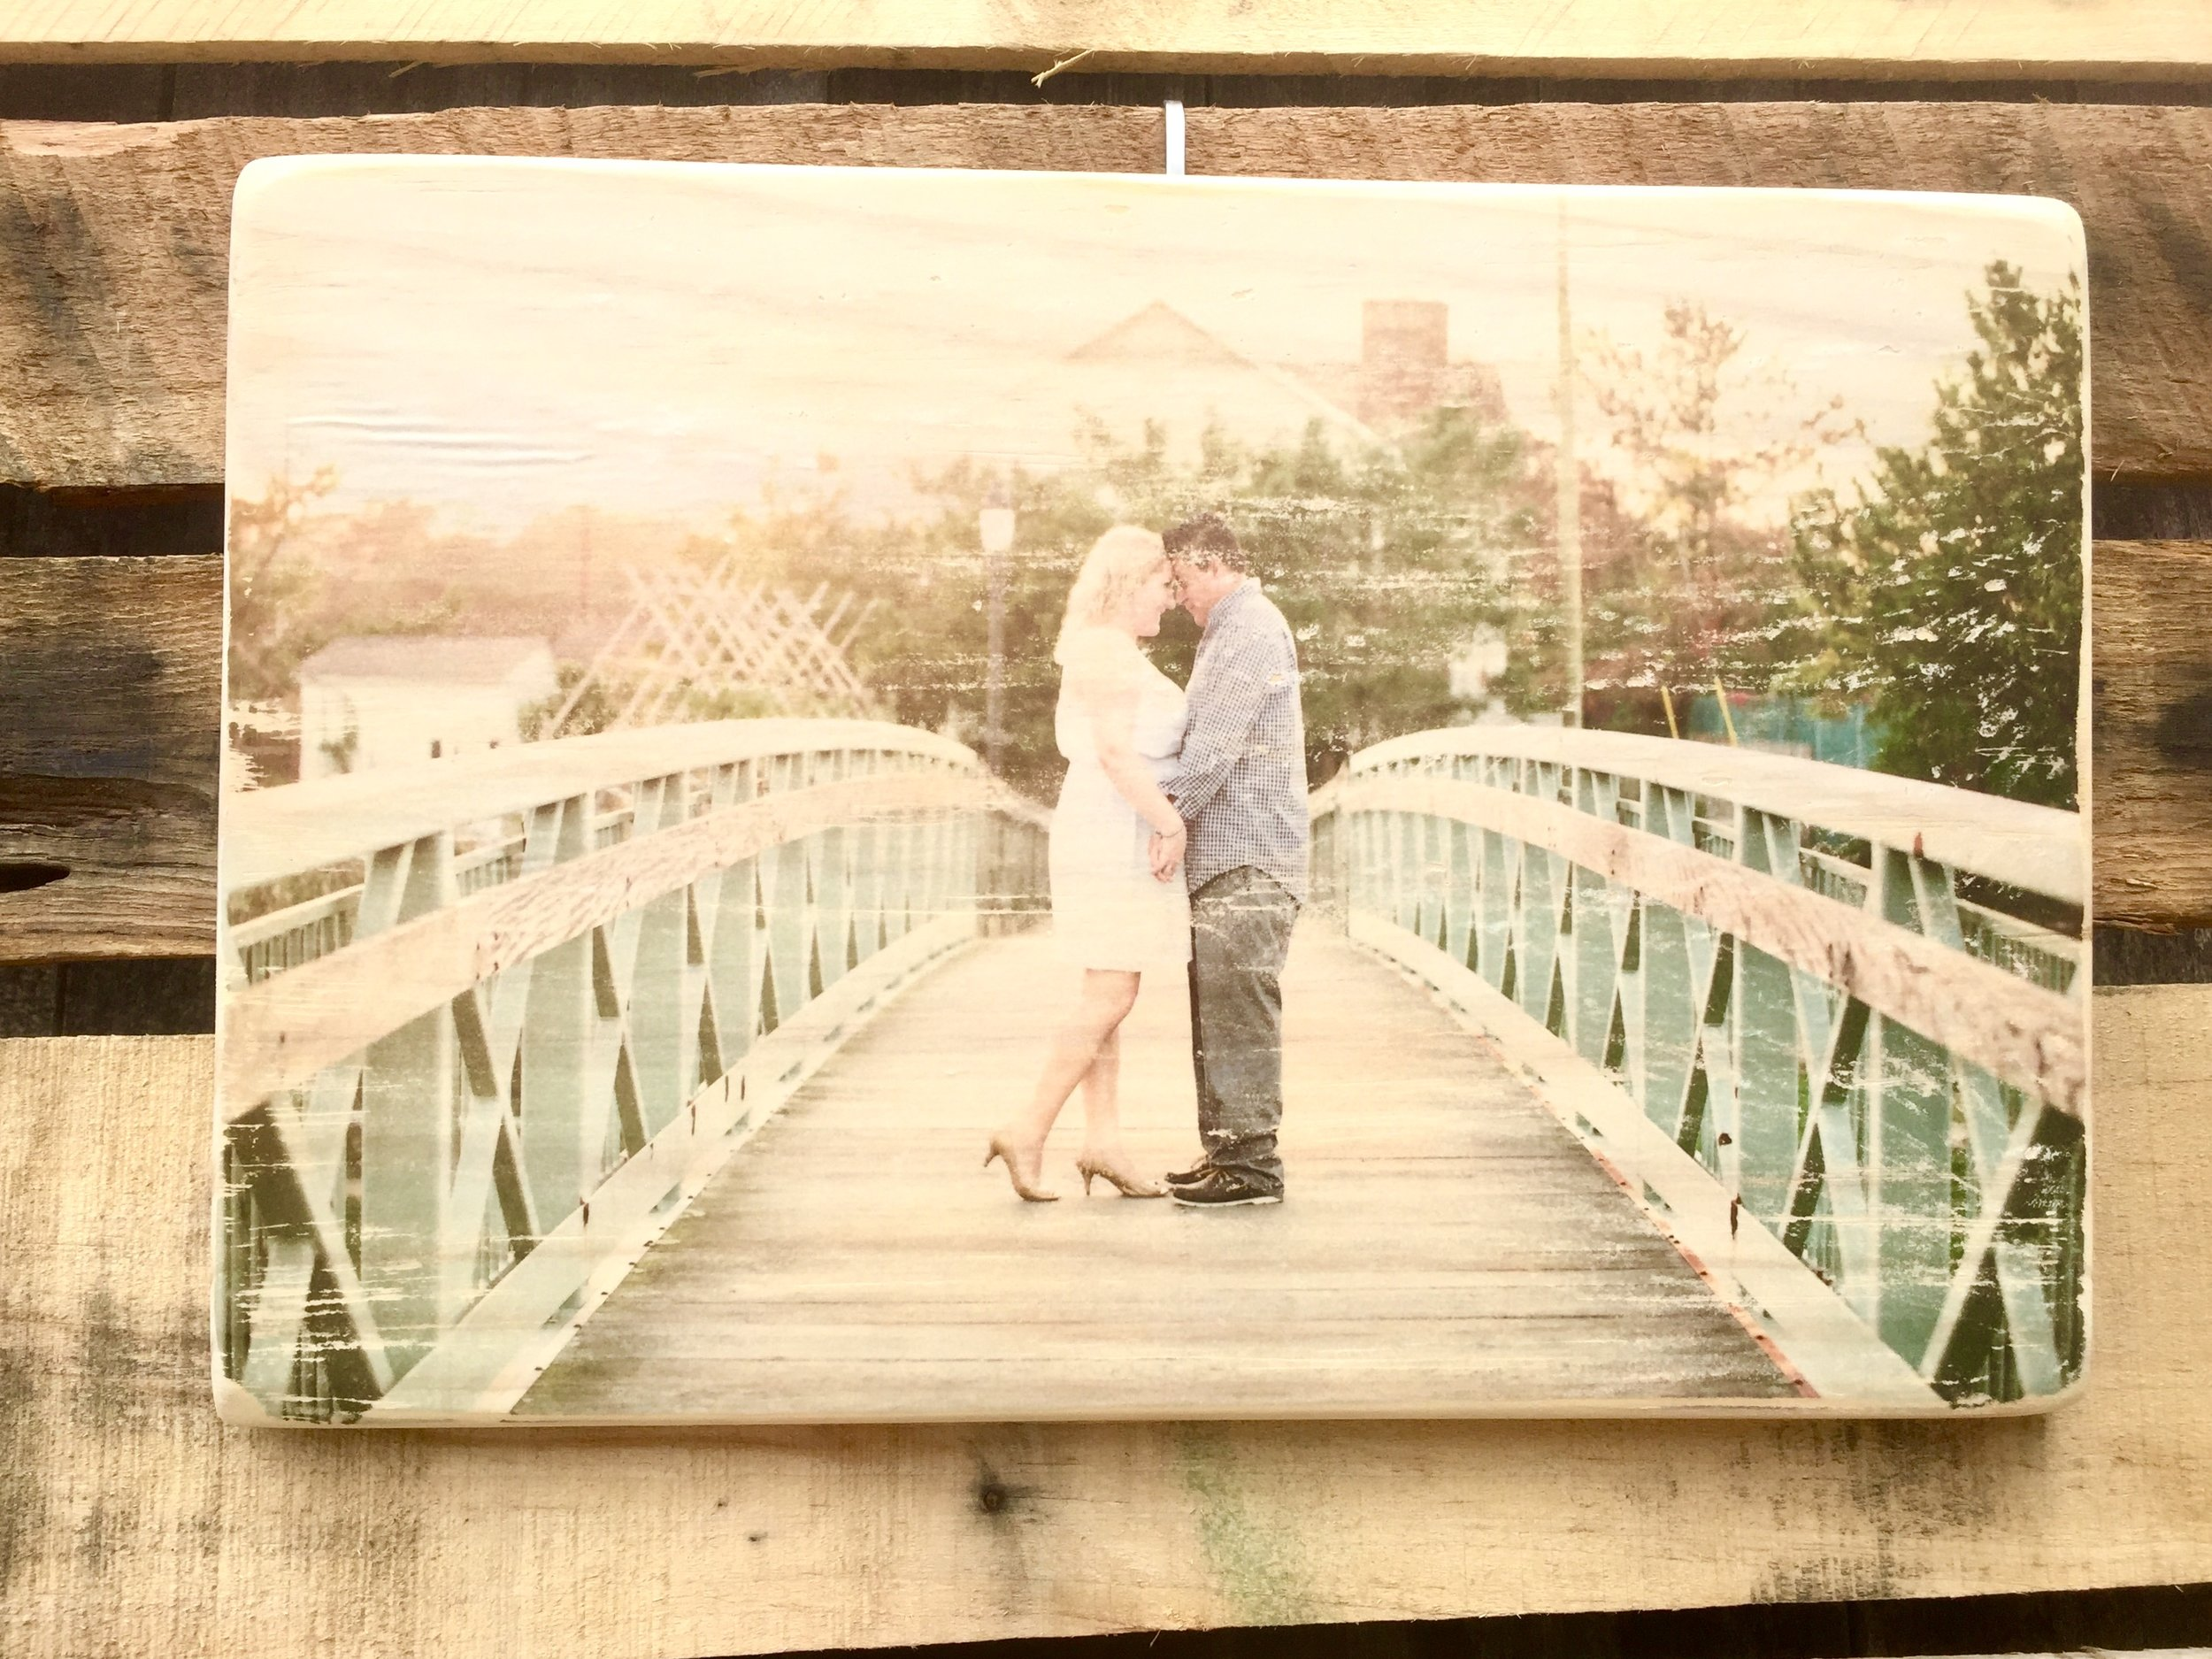 Everlasting Memories - Want a creative way to display your engagement, vacation, or family photos? Seventeenth Street Designs can transfer any digital photo on to a solid piece of pine wood.